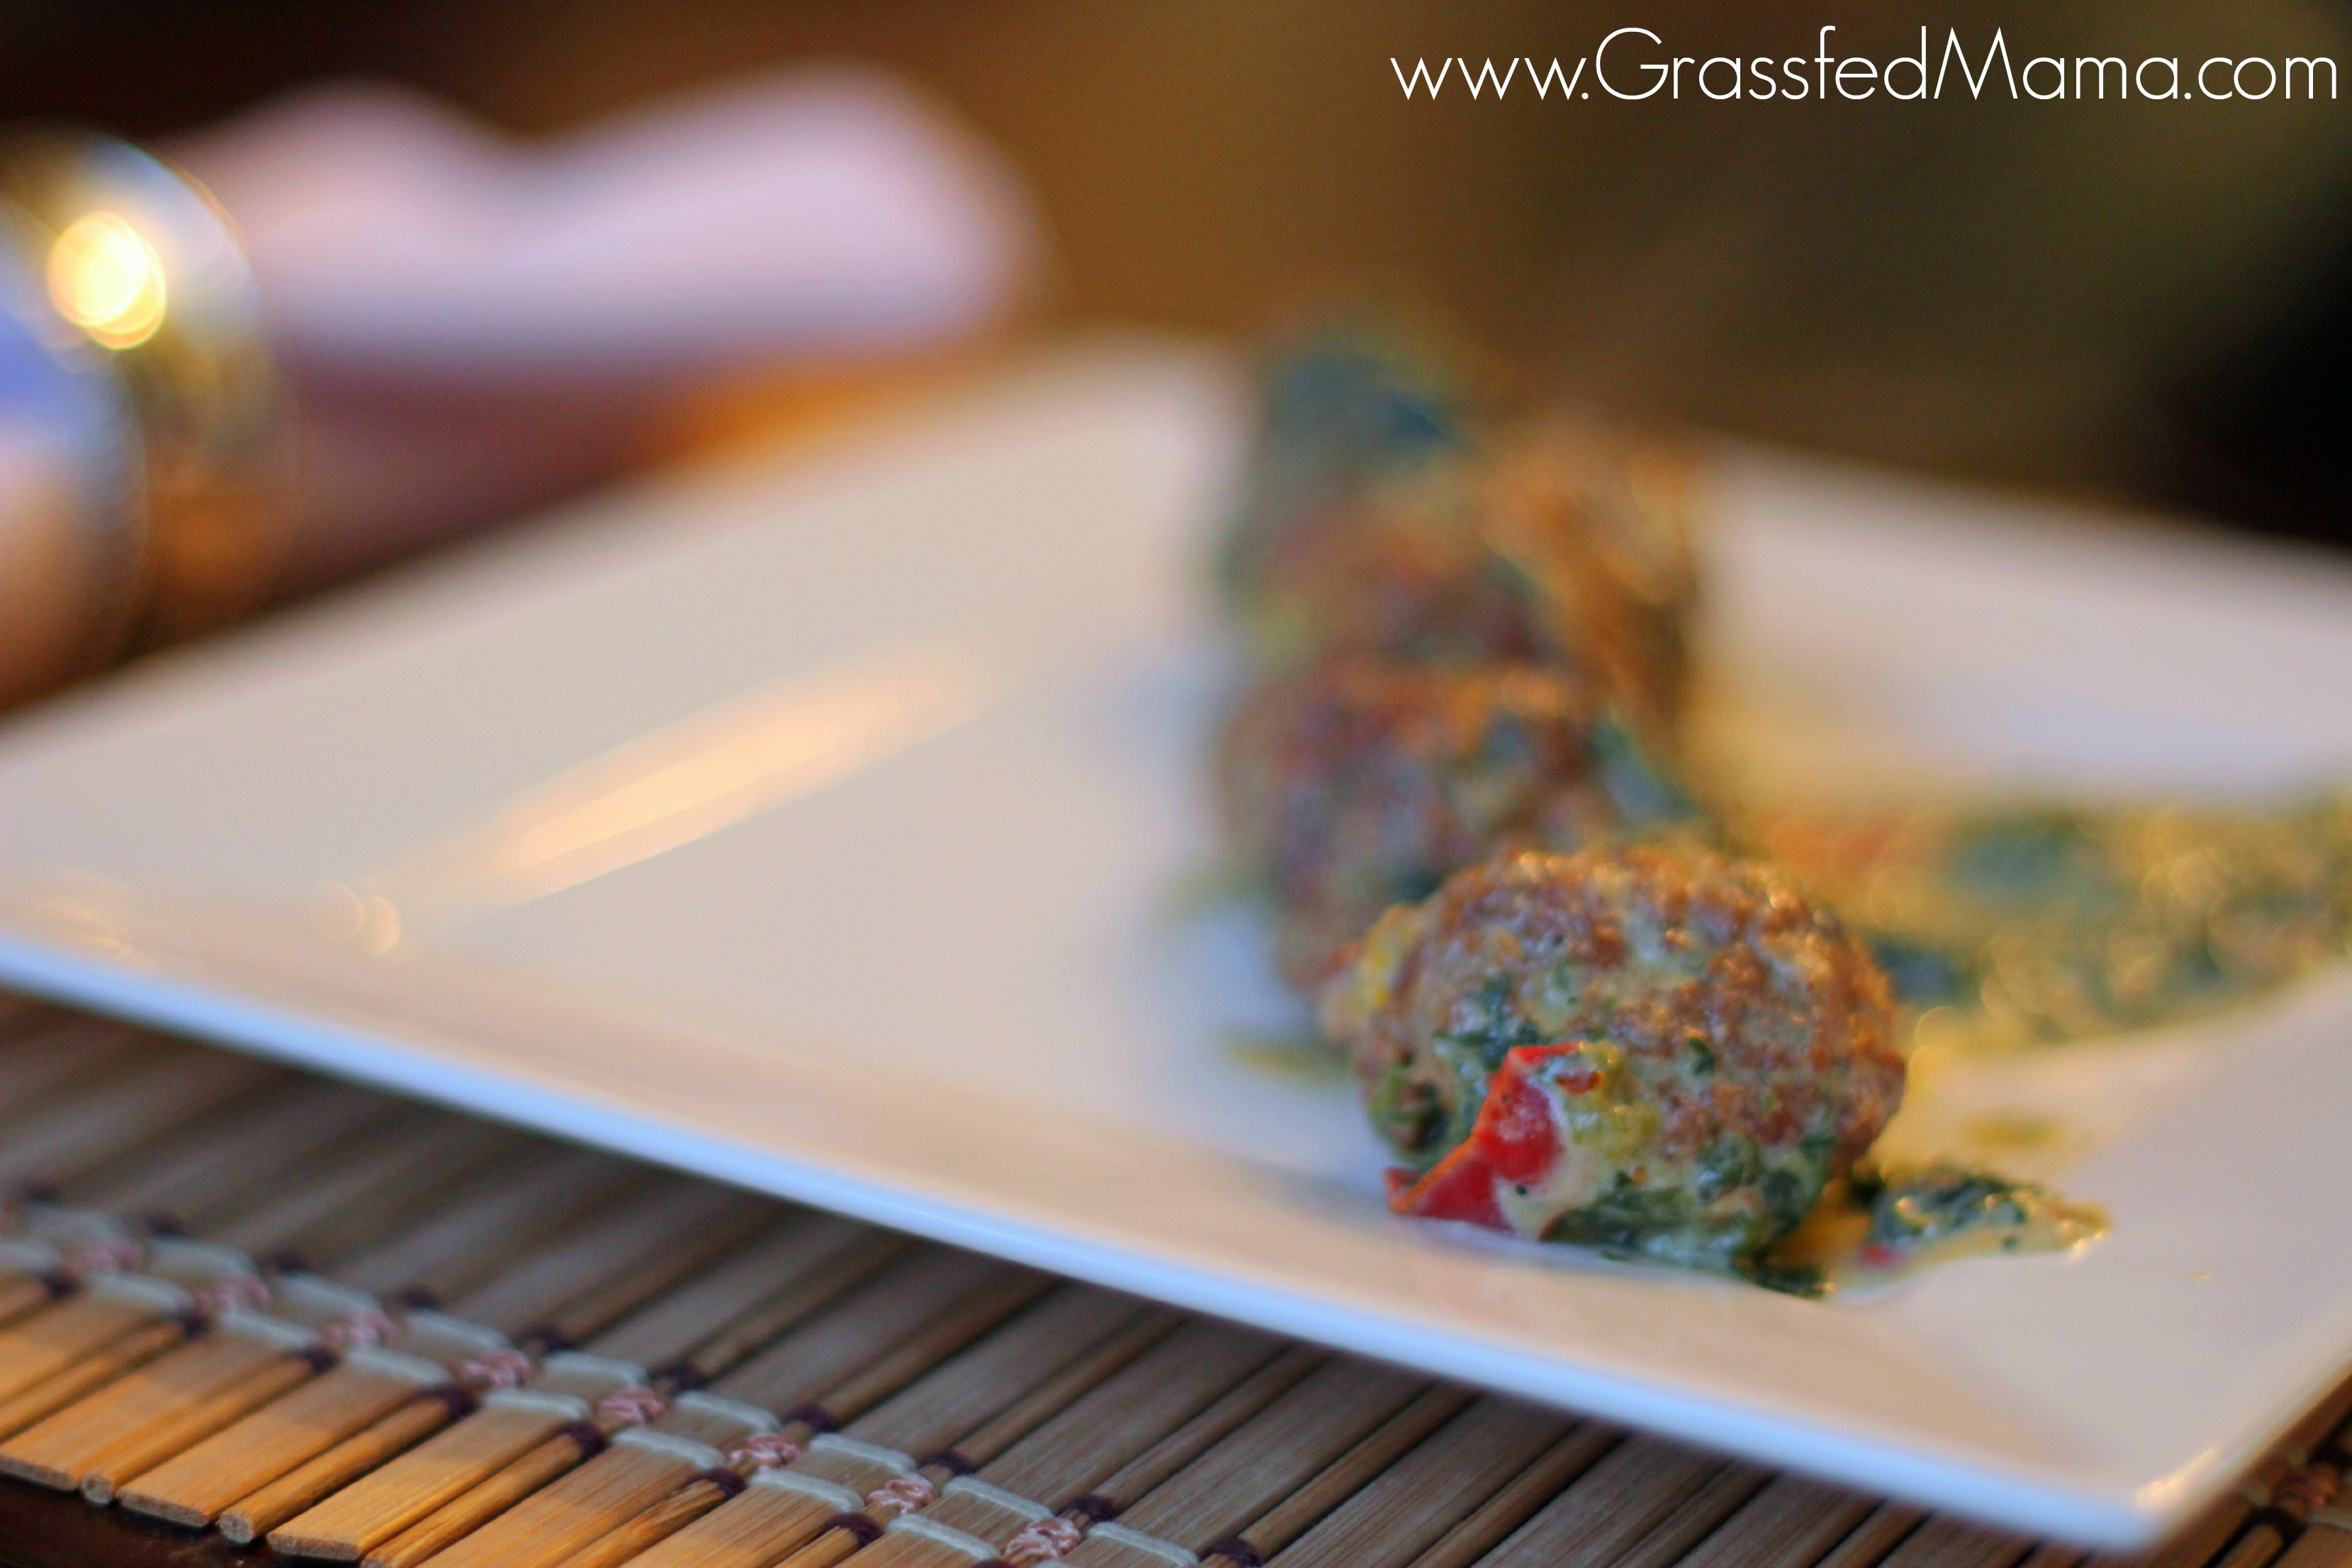 Creamy Spinach and Meatballs